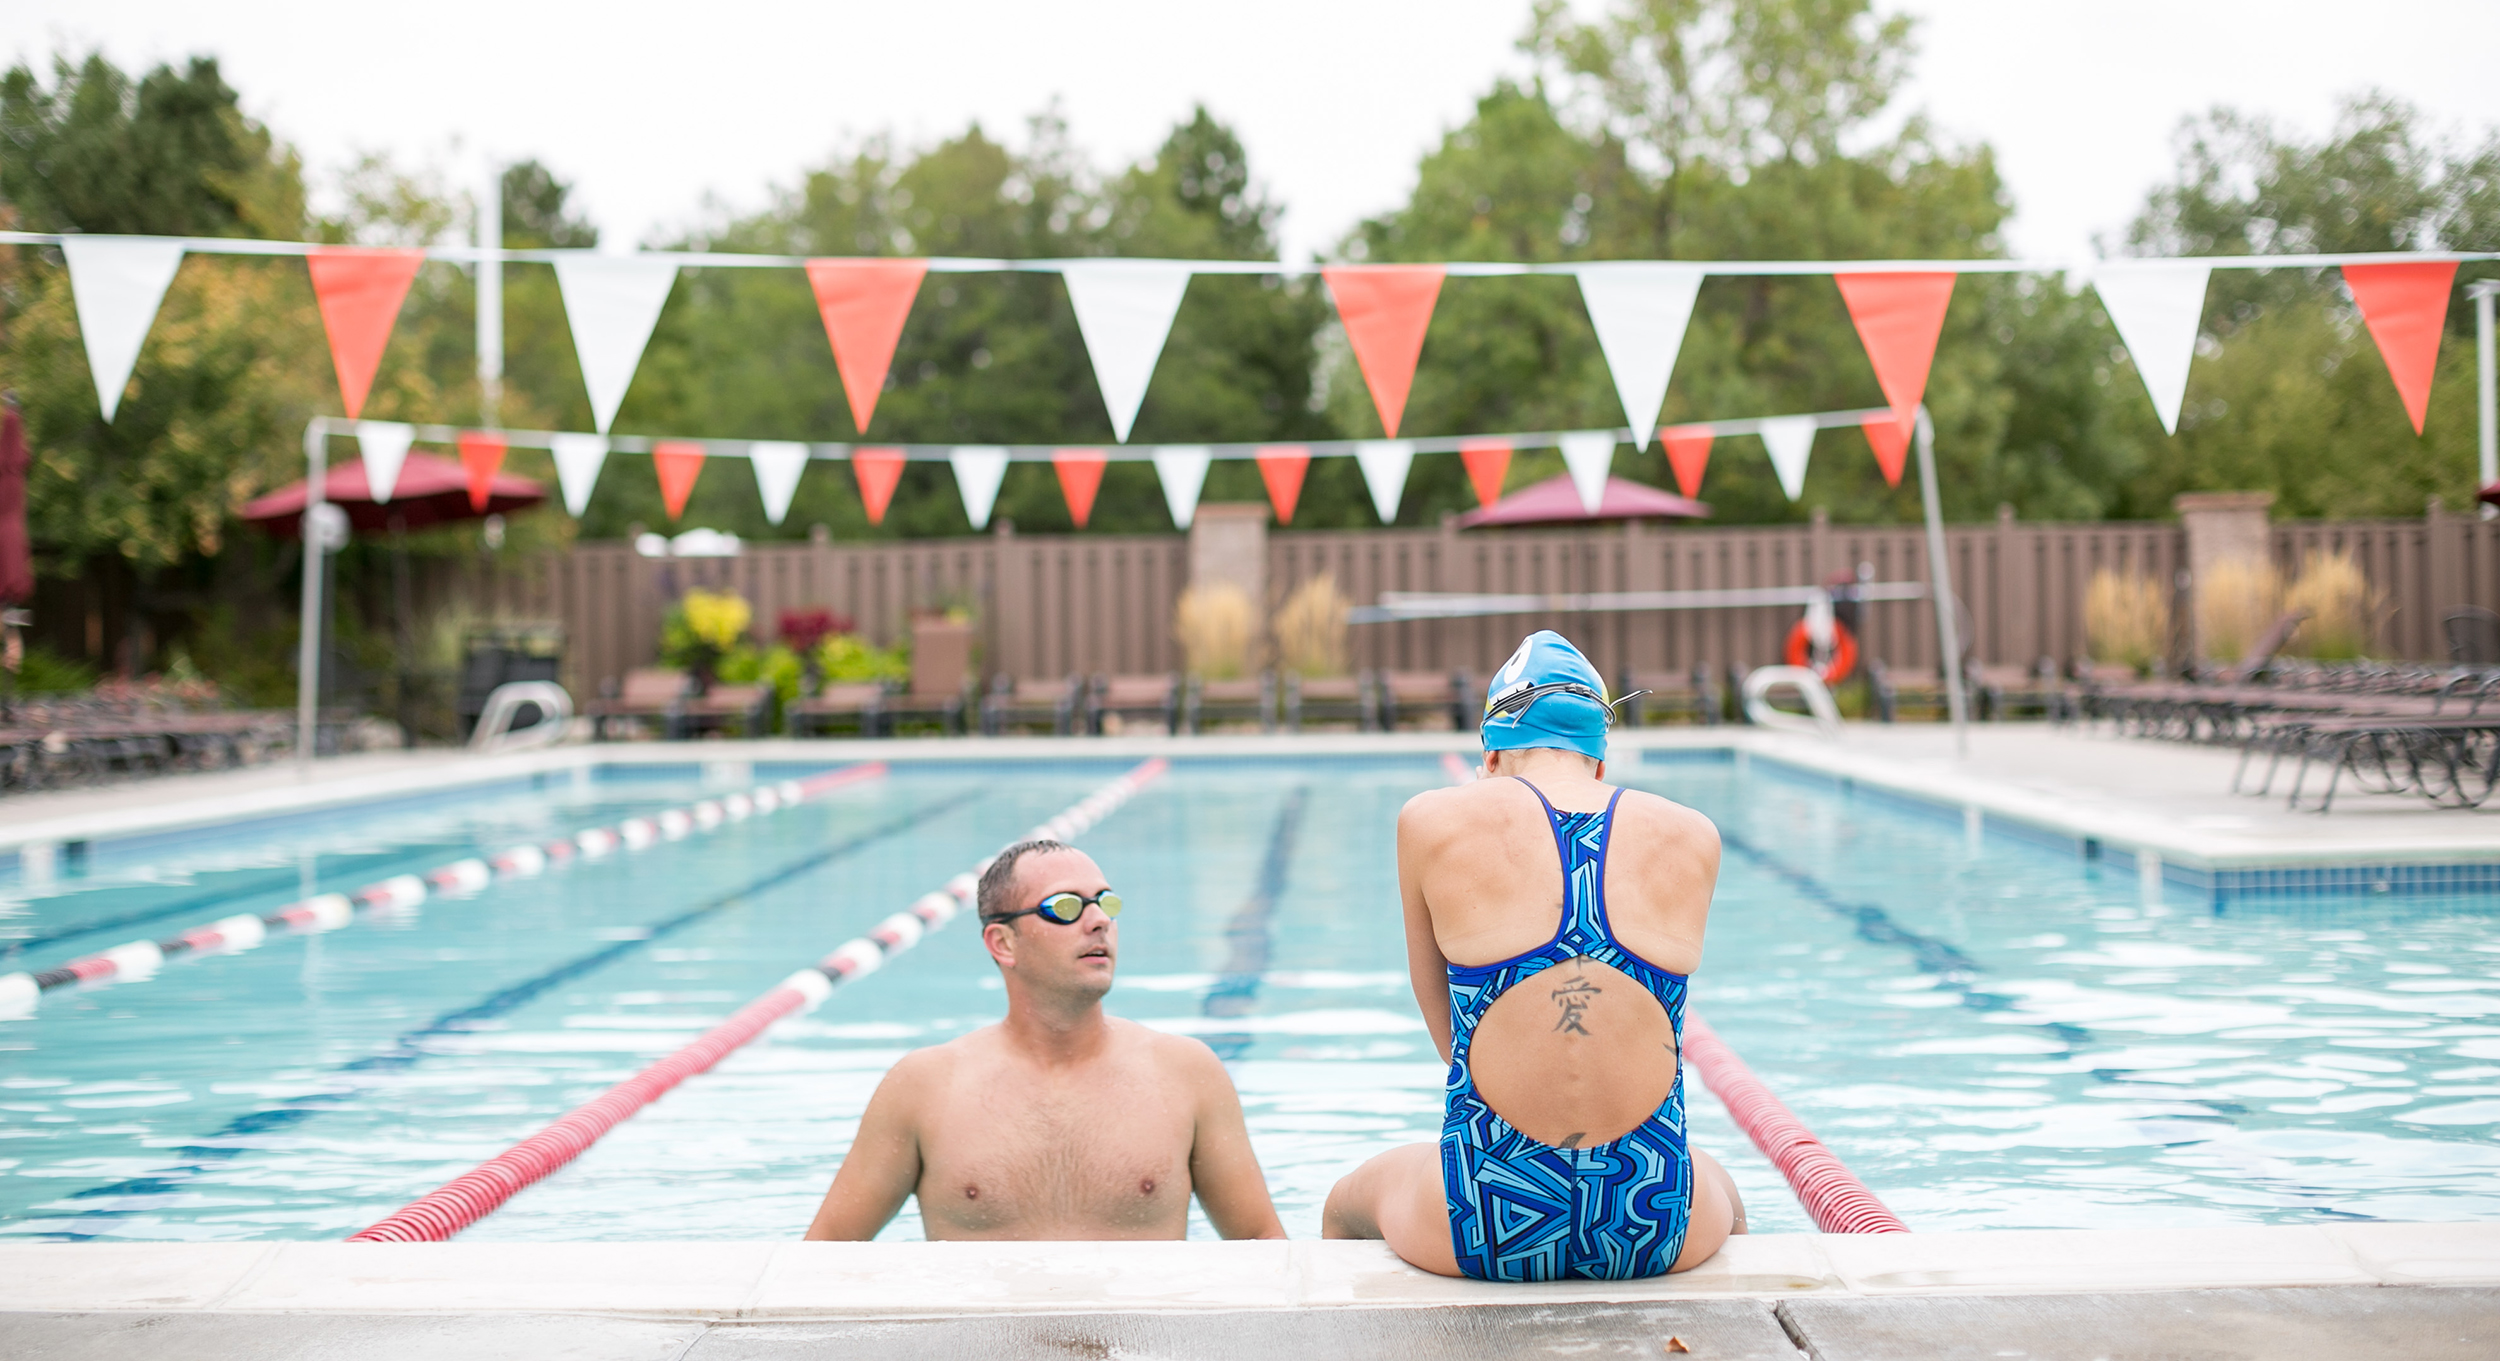 Outdoor pool and aquatics classes in Fort Collins